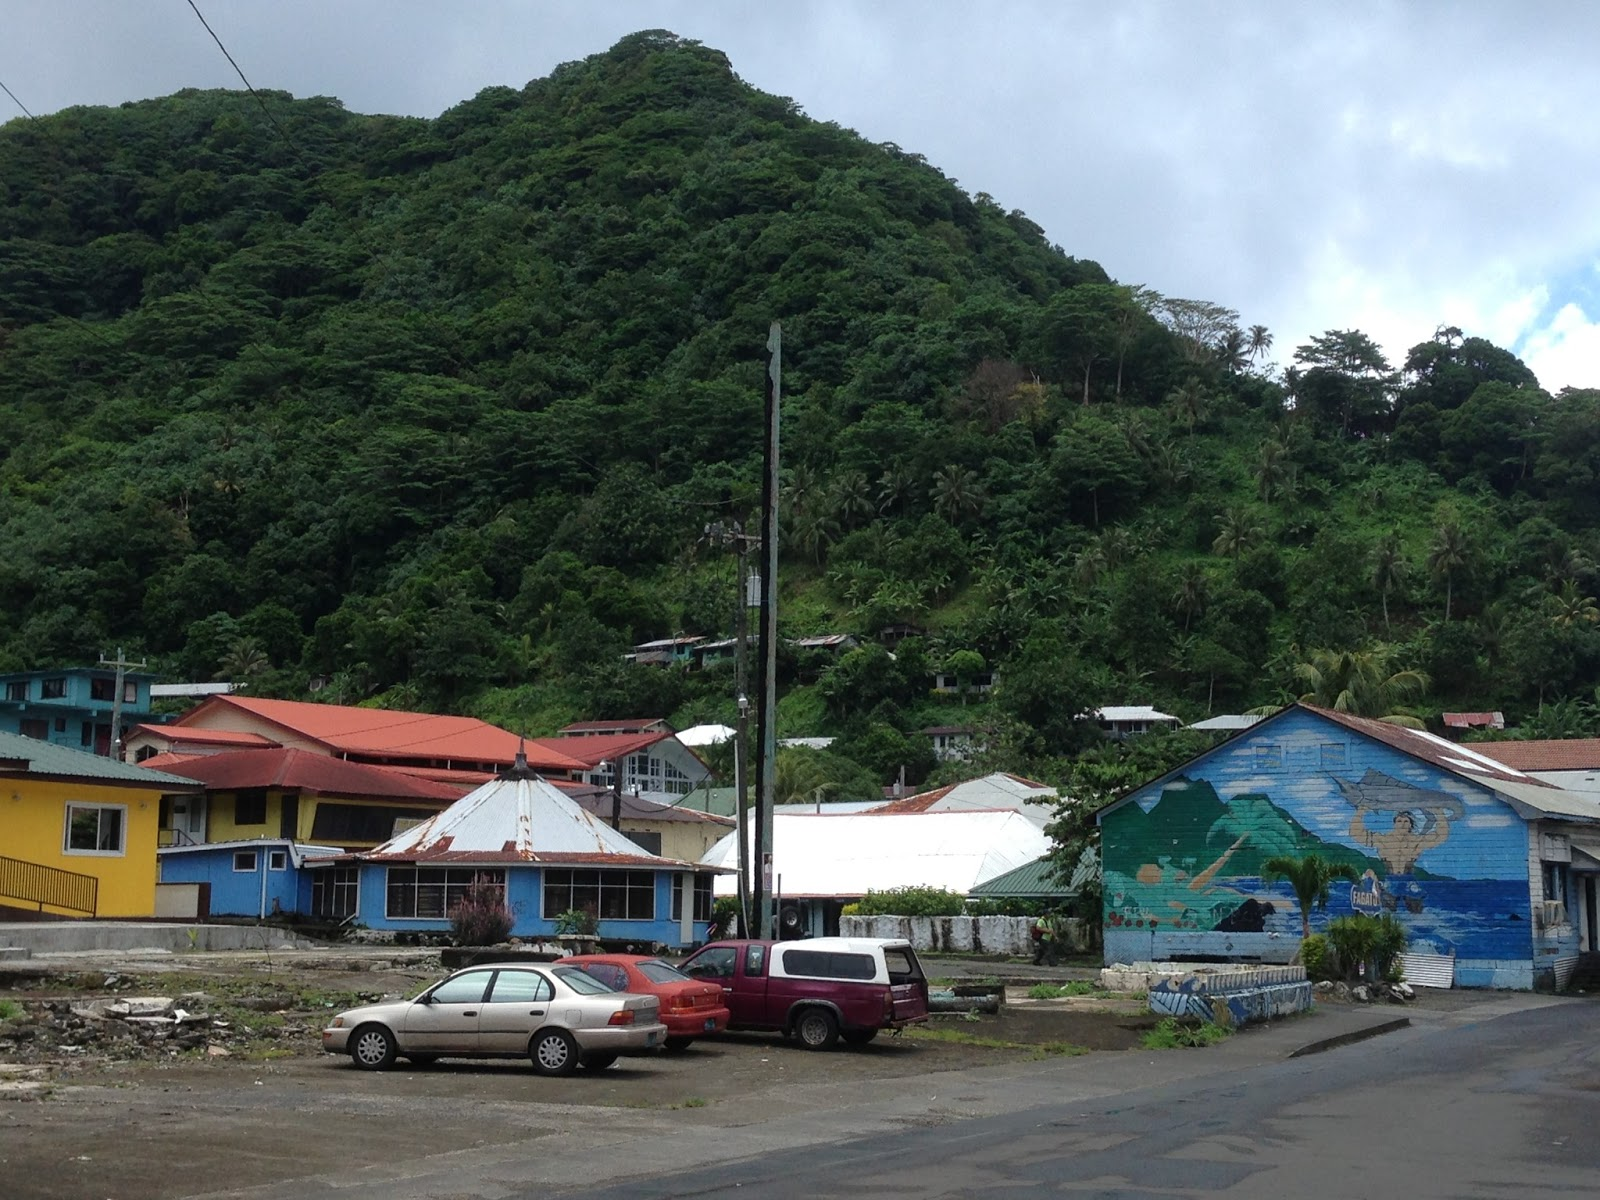 Travels of Note: Sunday in Pago Pago (American Samoa)